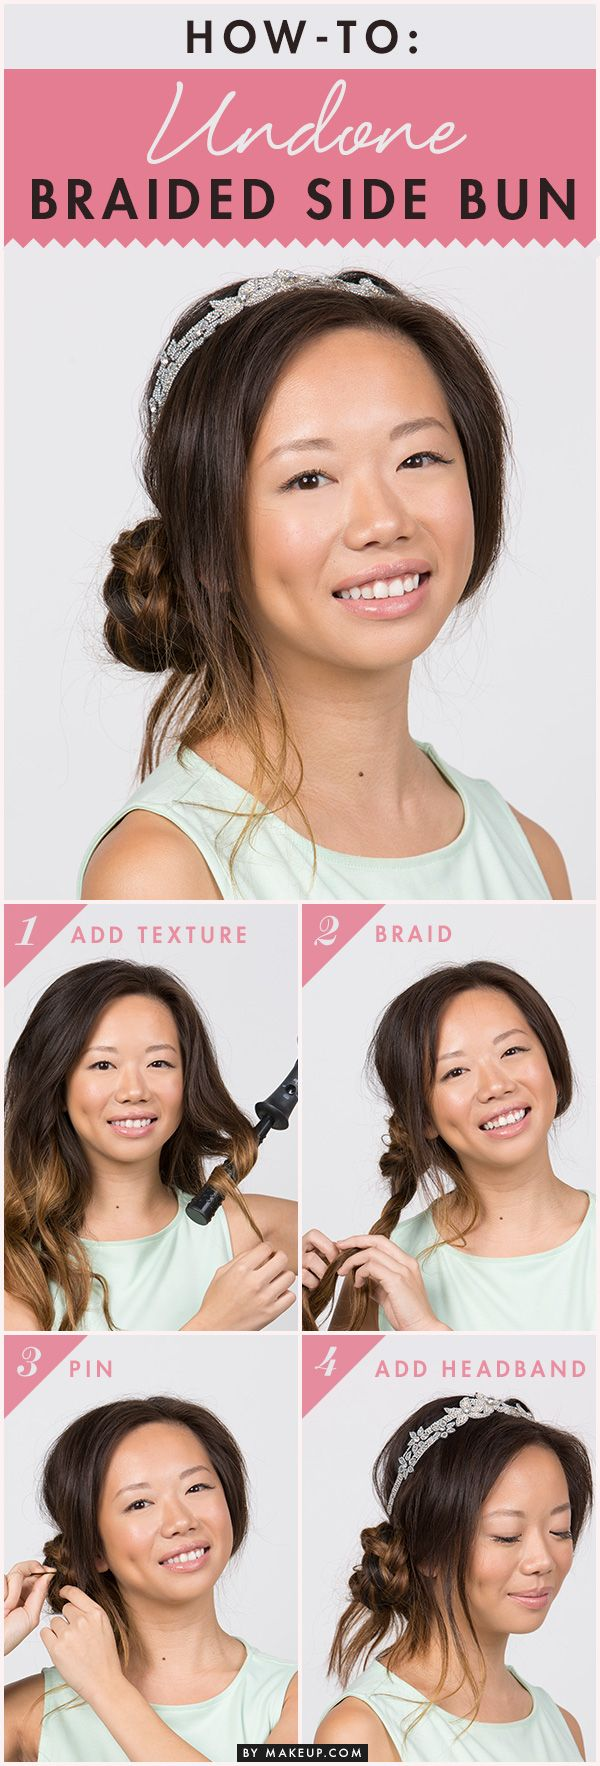 A braided side bun is the perfect look for girls that want to look effortless ye...